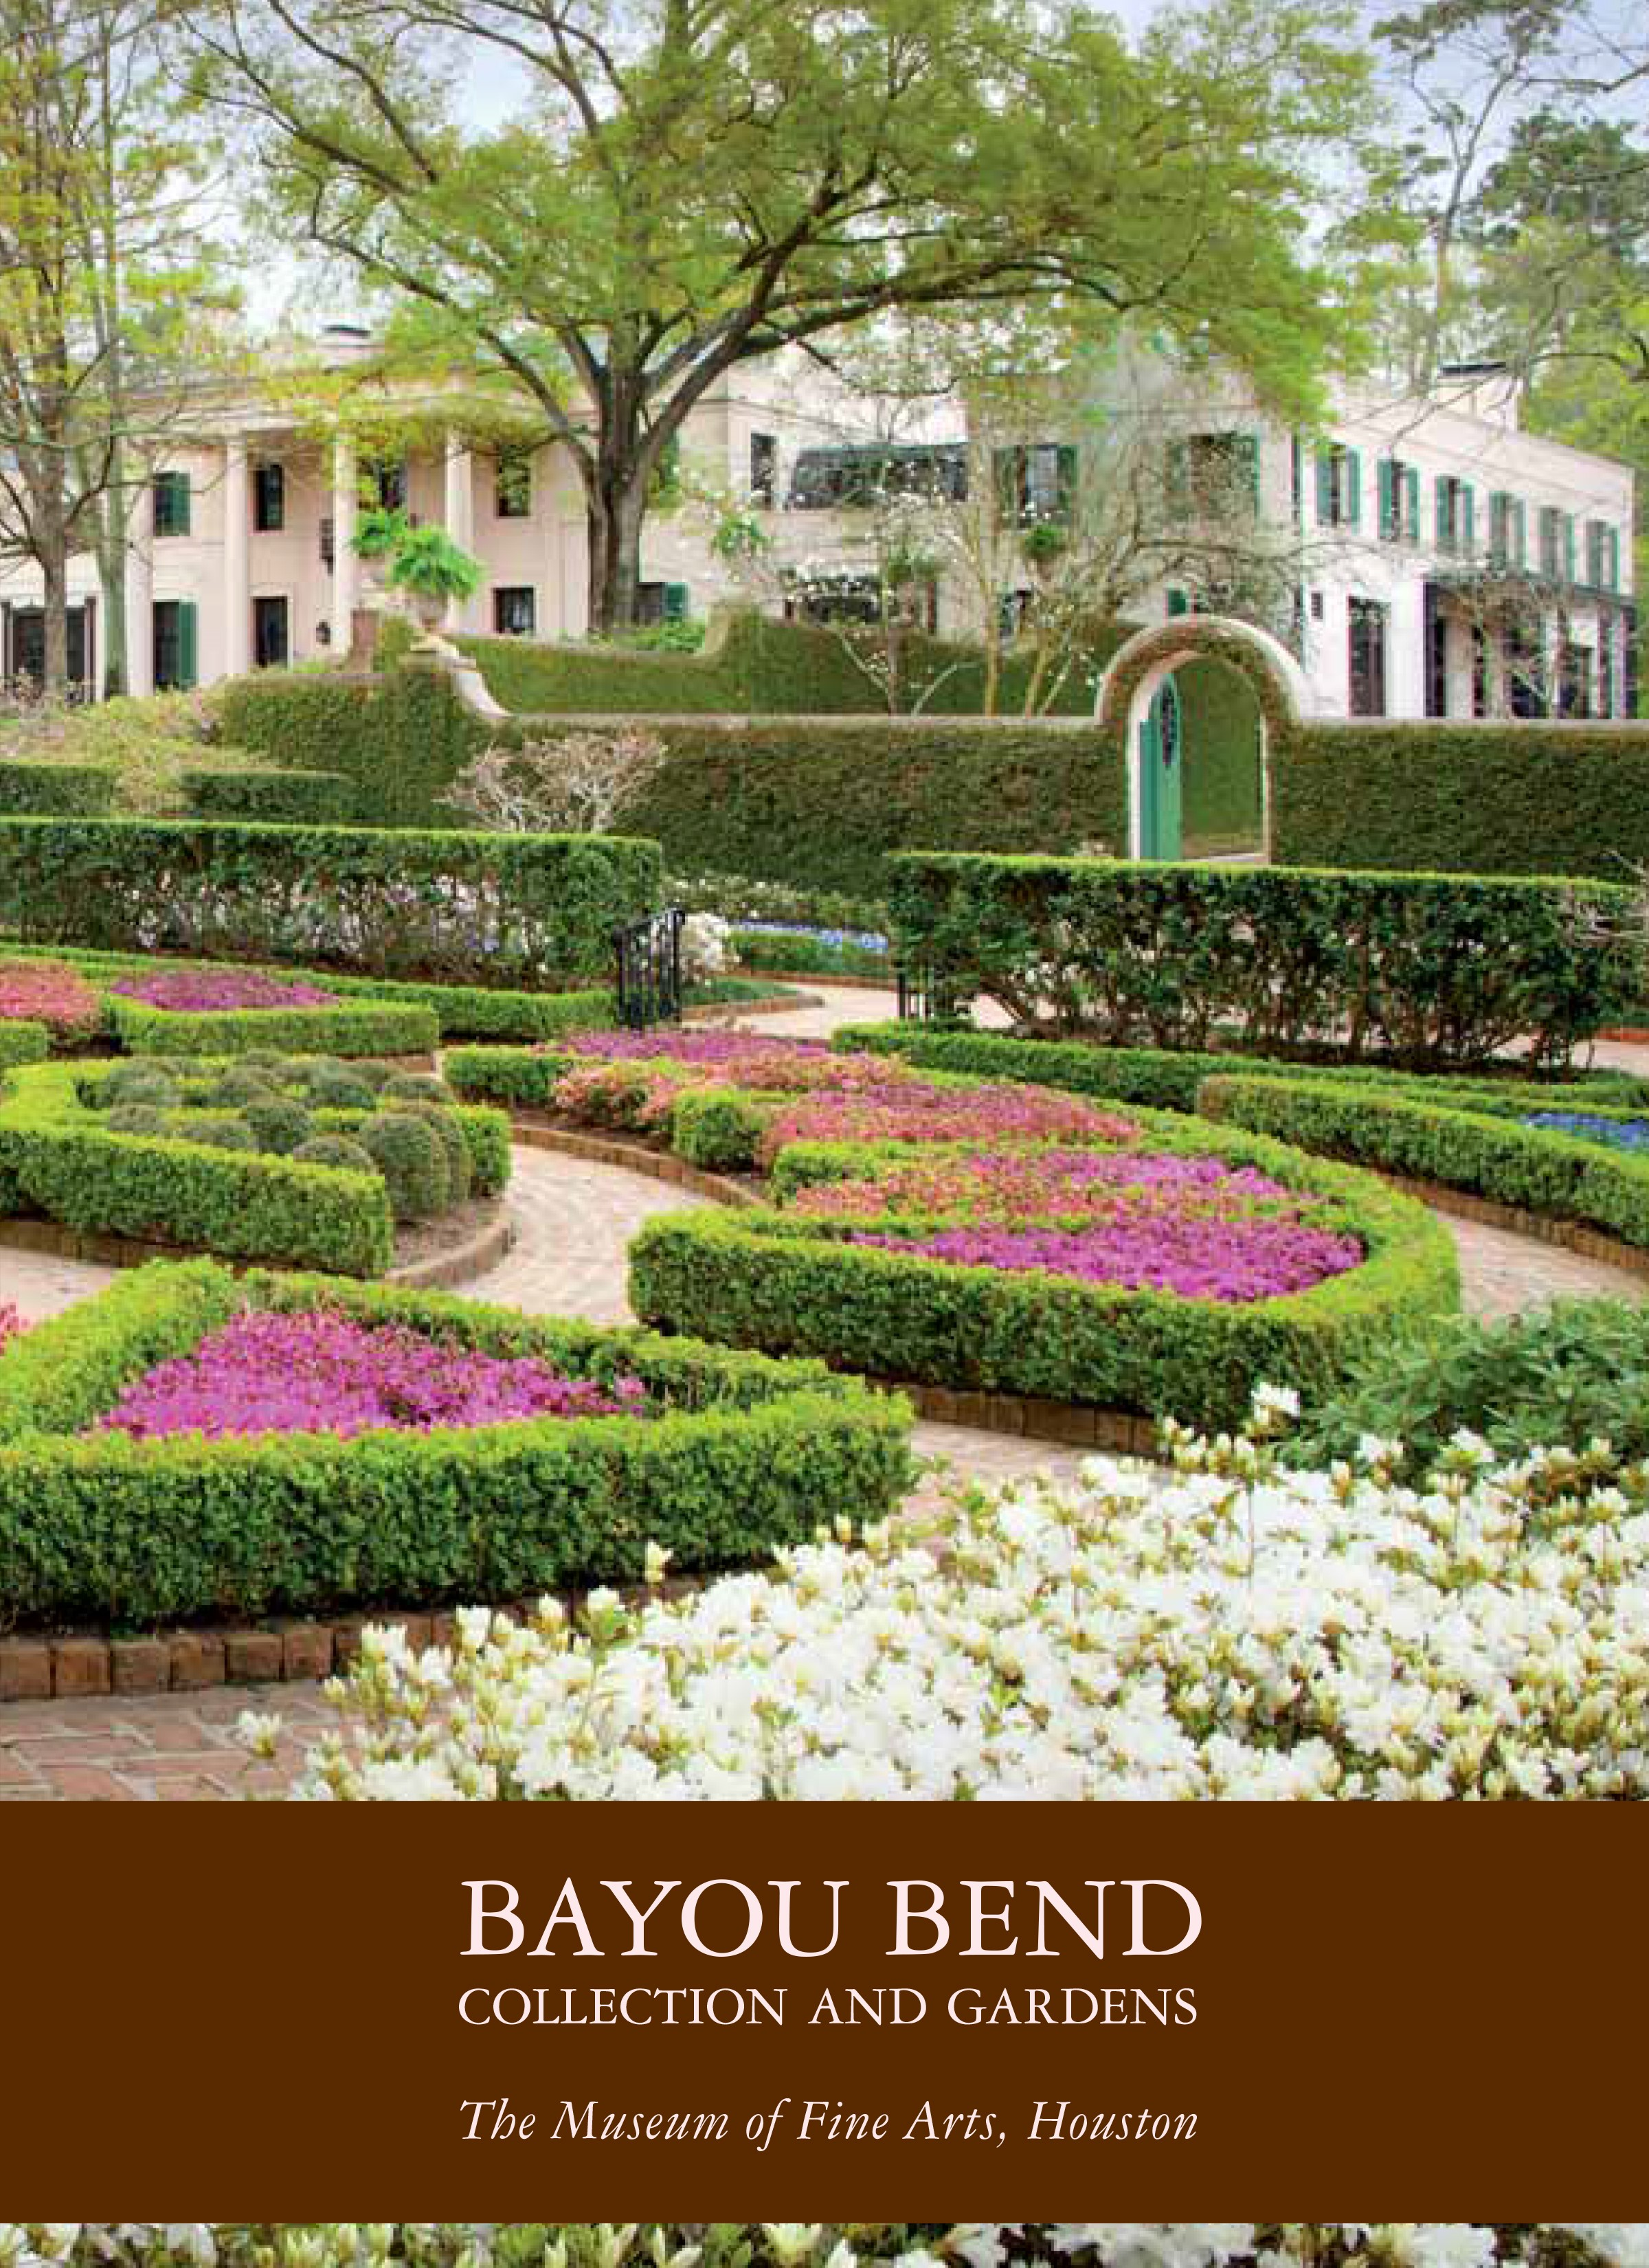 Bayou bend gardens the museum of fine arts houston for Gardening and landscaping